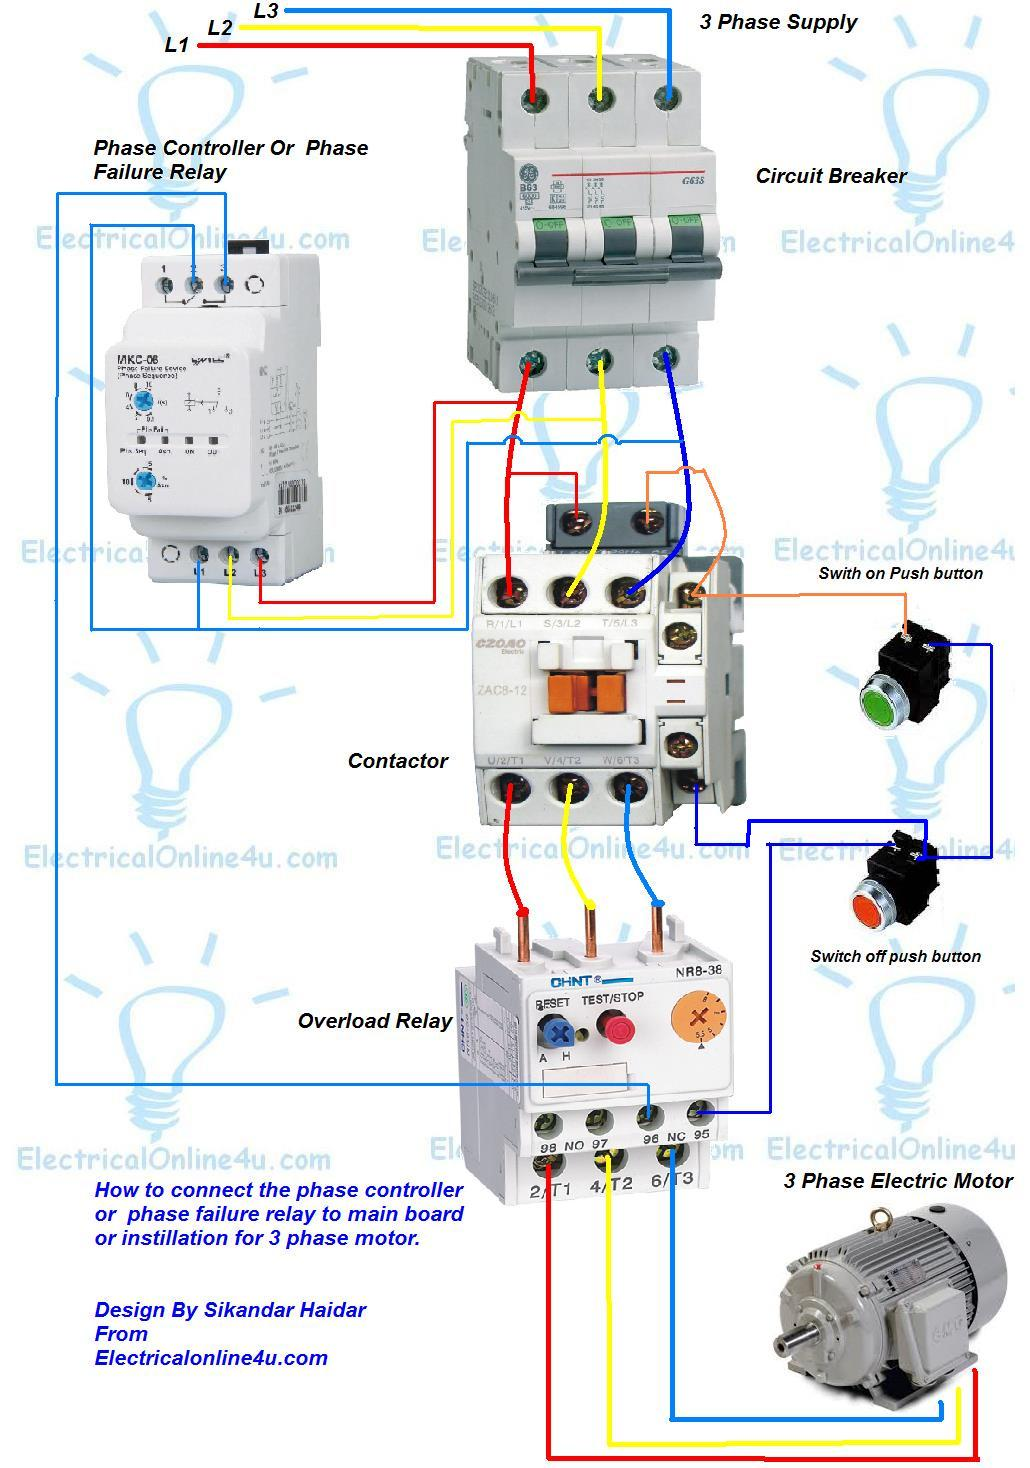 Phase%2Bfailure%2Brelay%2B %2Bphase%2Bcontroller%2Binstilaion%2Bin%2B3%2Bphase%2BMain%2Bboard%2Bor%2Bfor%2B3%2Bphase%2Bmotor phase controller wiring phase failure relay diagram electrical wiring diagram for contactor at soozxer.org